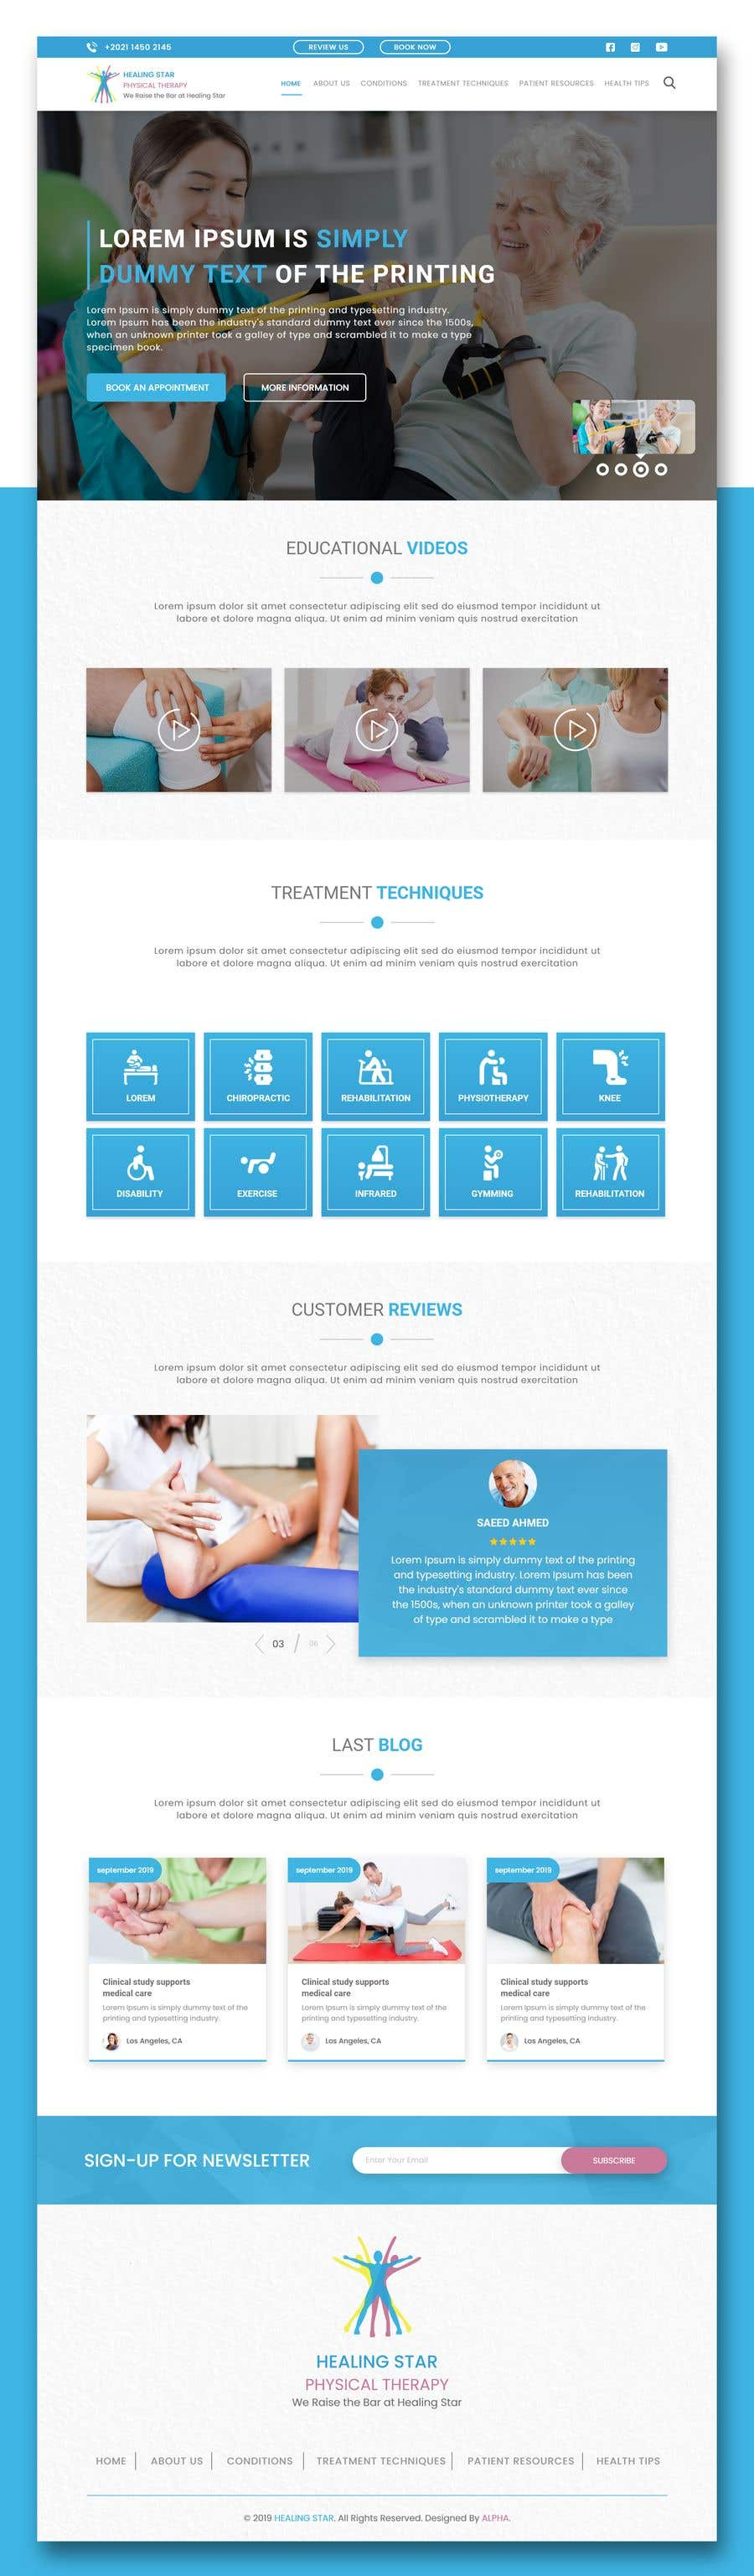 Penyertaan Peraduan #26 untuk Need PSD for physical therapy website home page